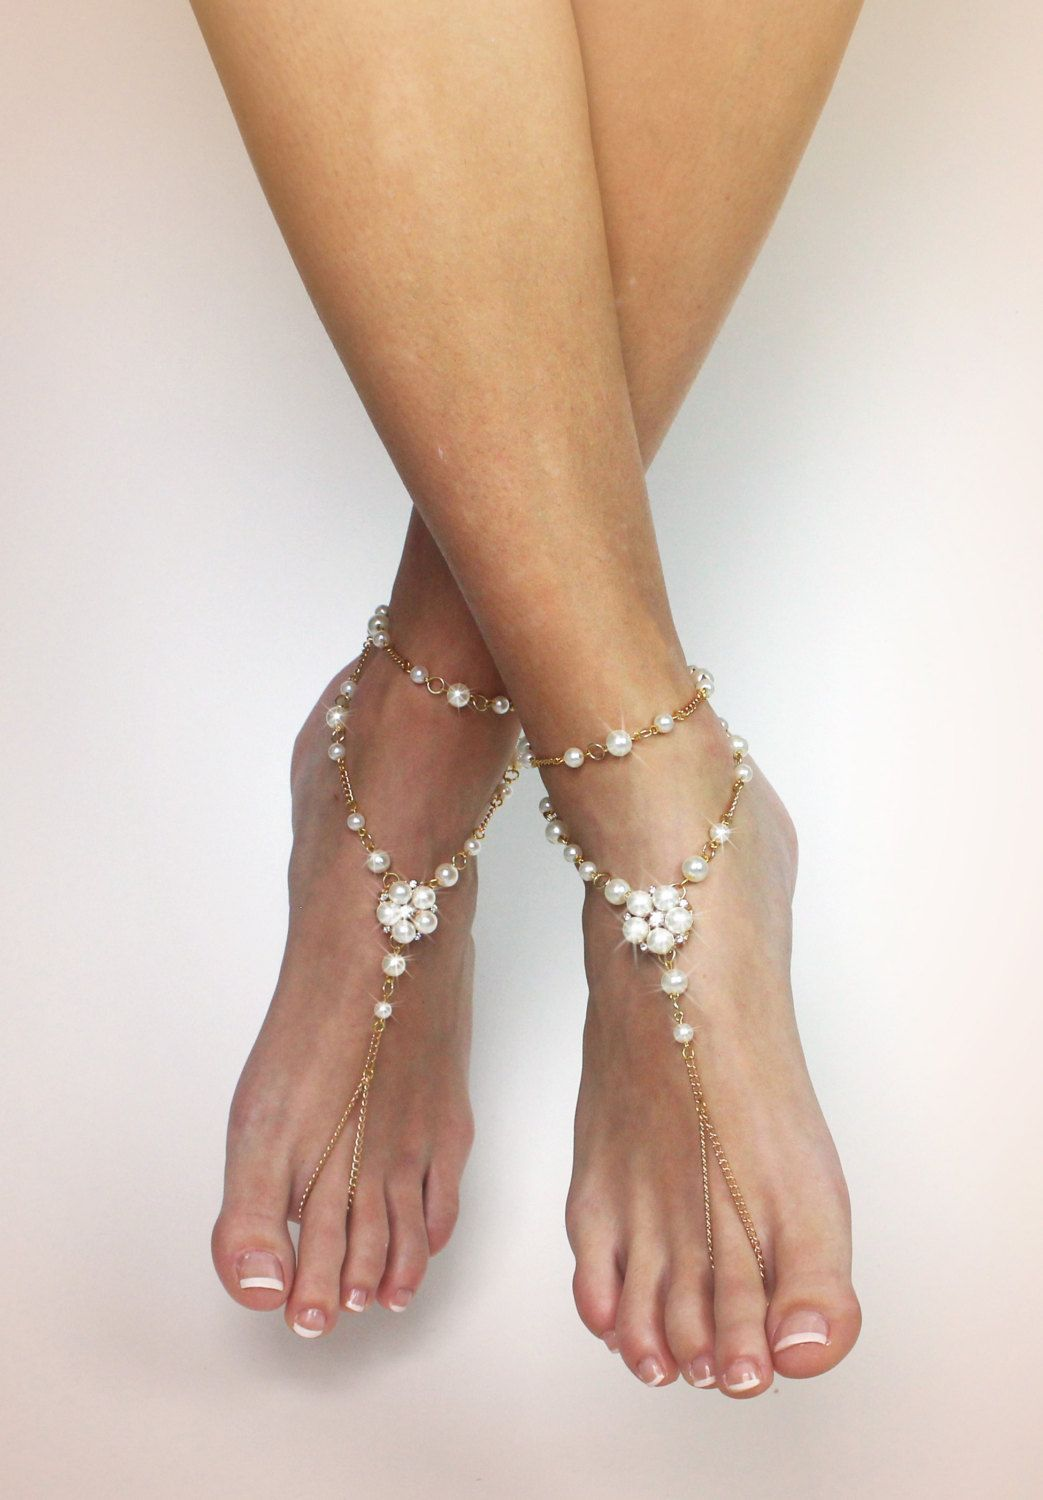 Gaia Barefoot Sandals Bridemaids Gift Anklet Gold Foot Jewelry Beach